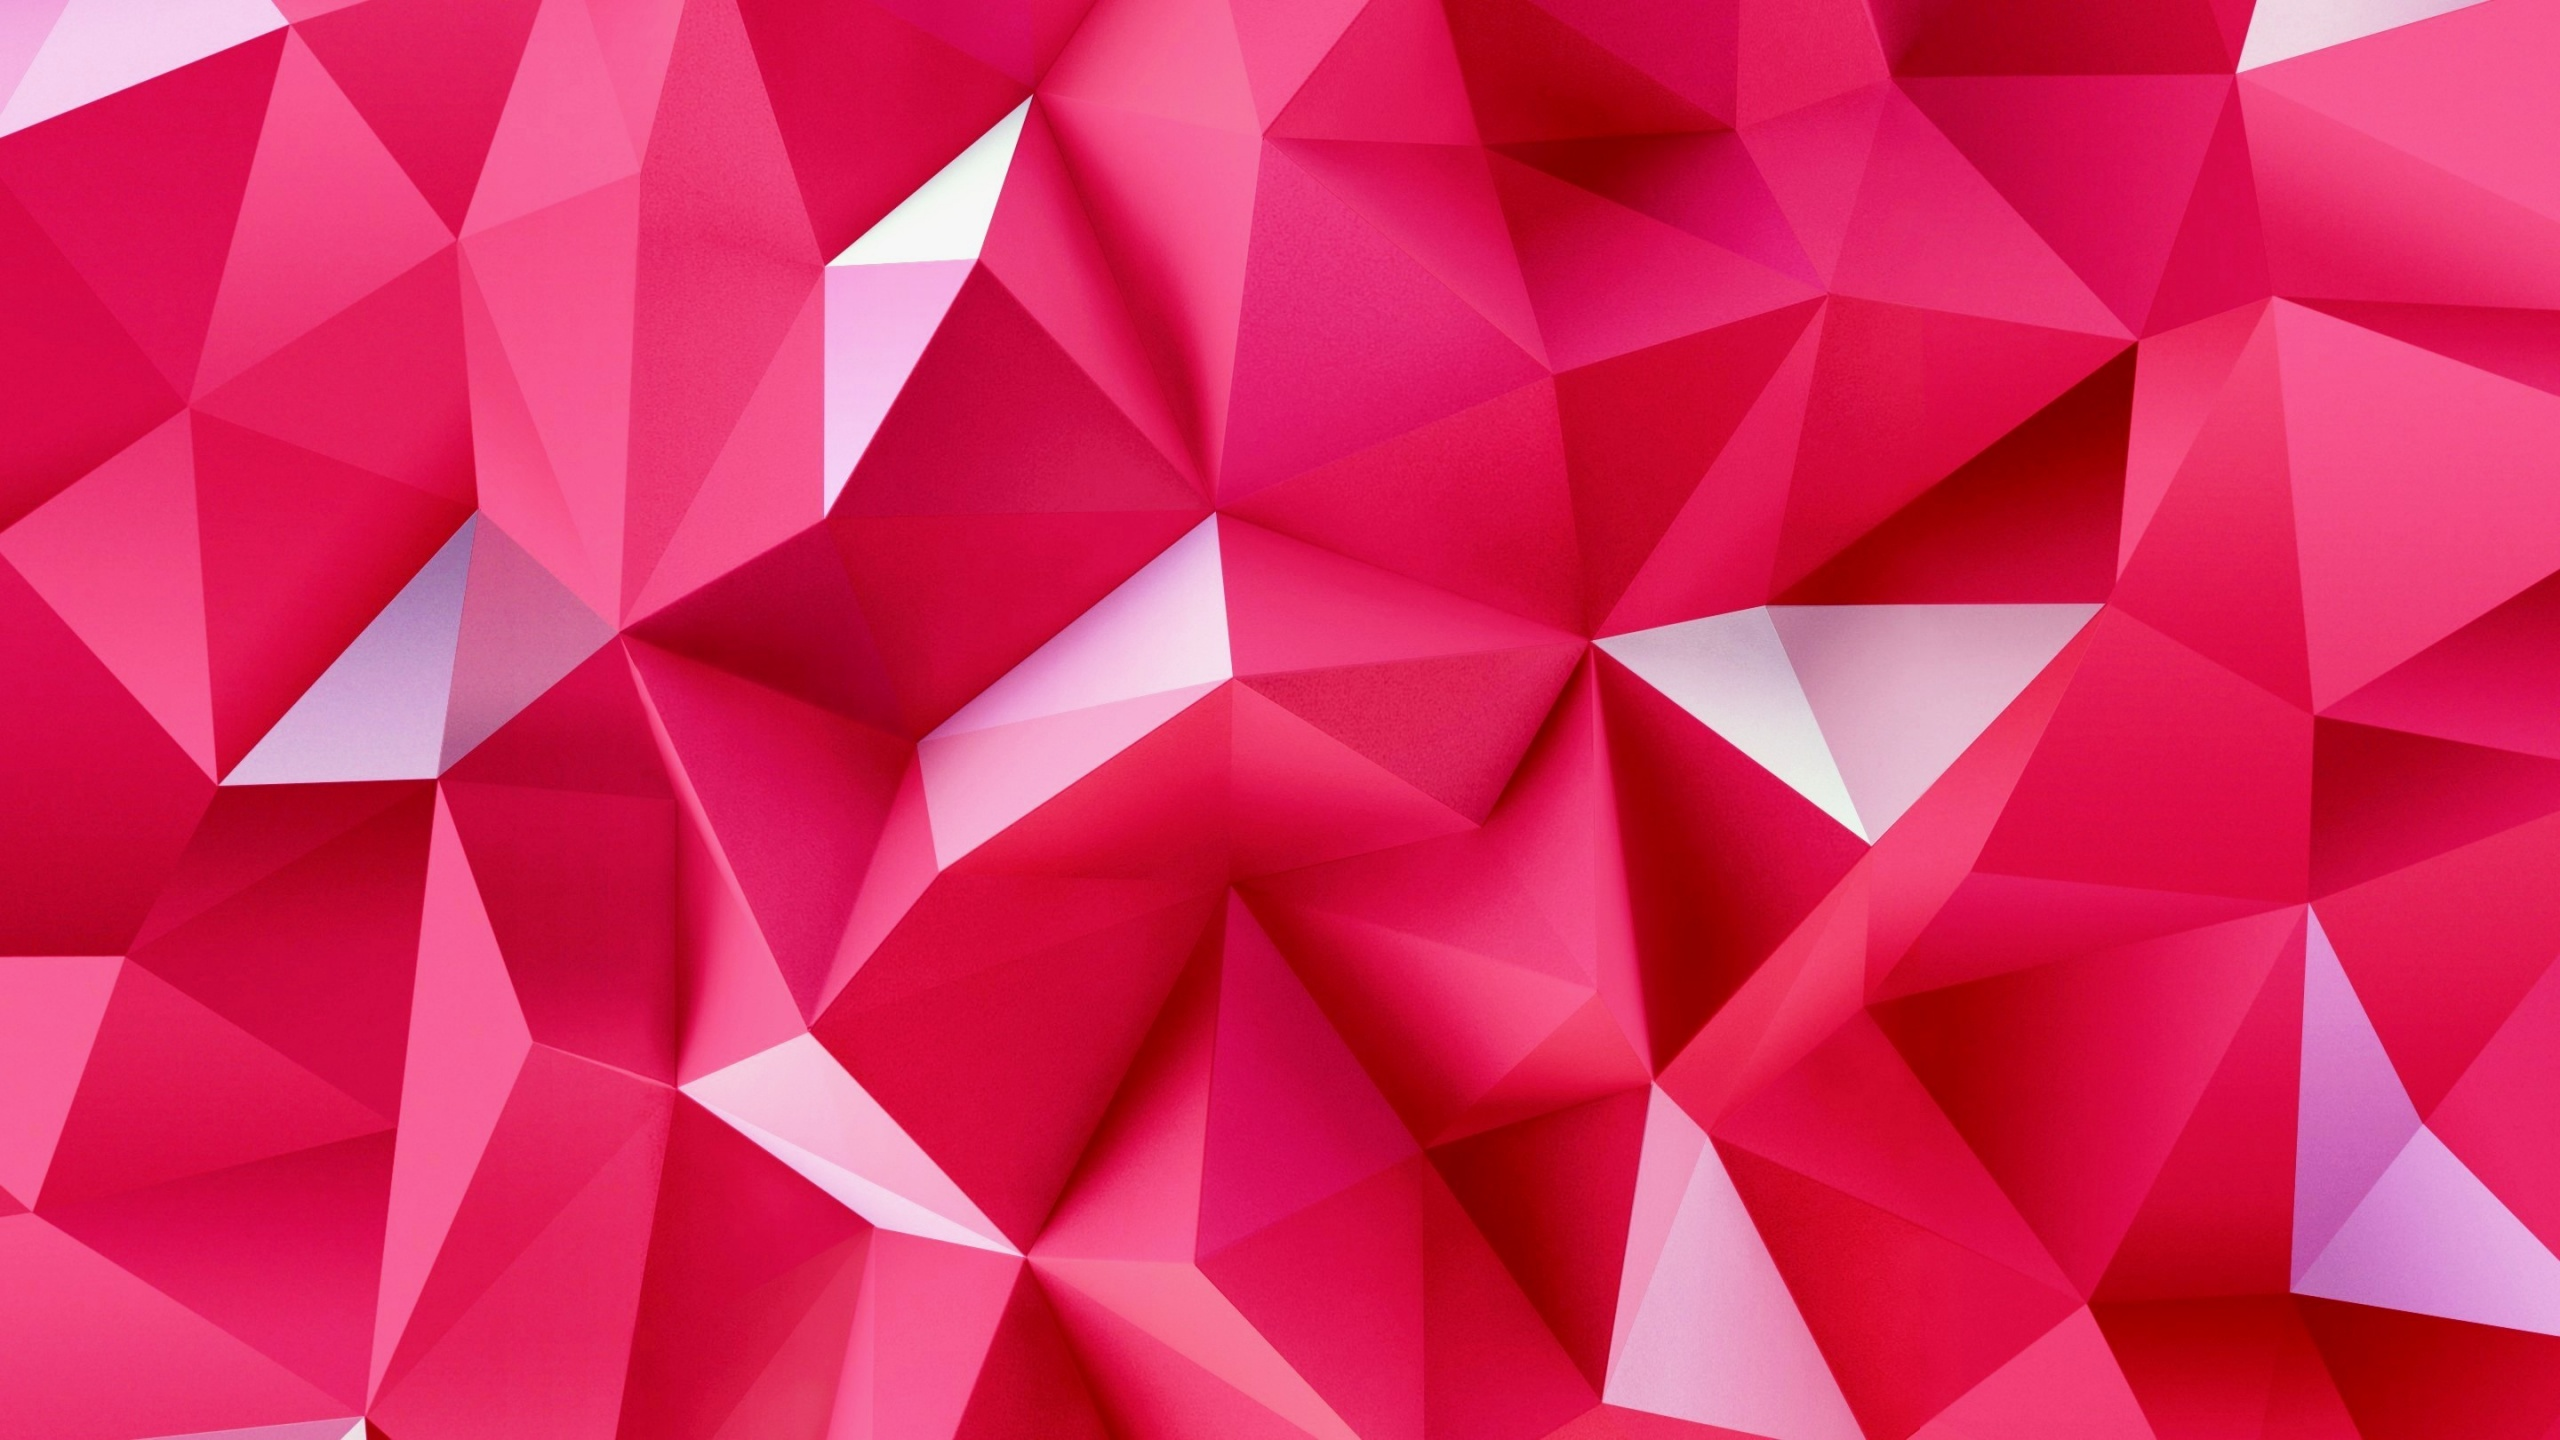 3d pink triangles wallpapers 2560x1440 658012 for 3d wallpaper pink